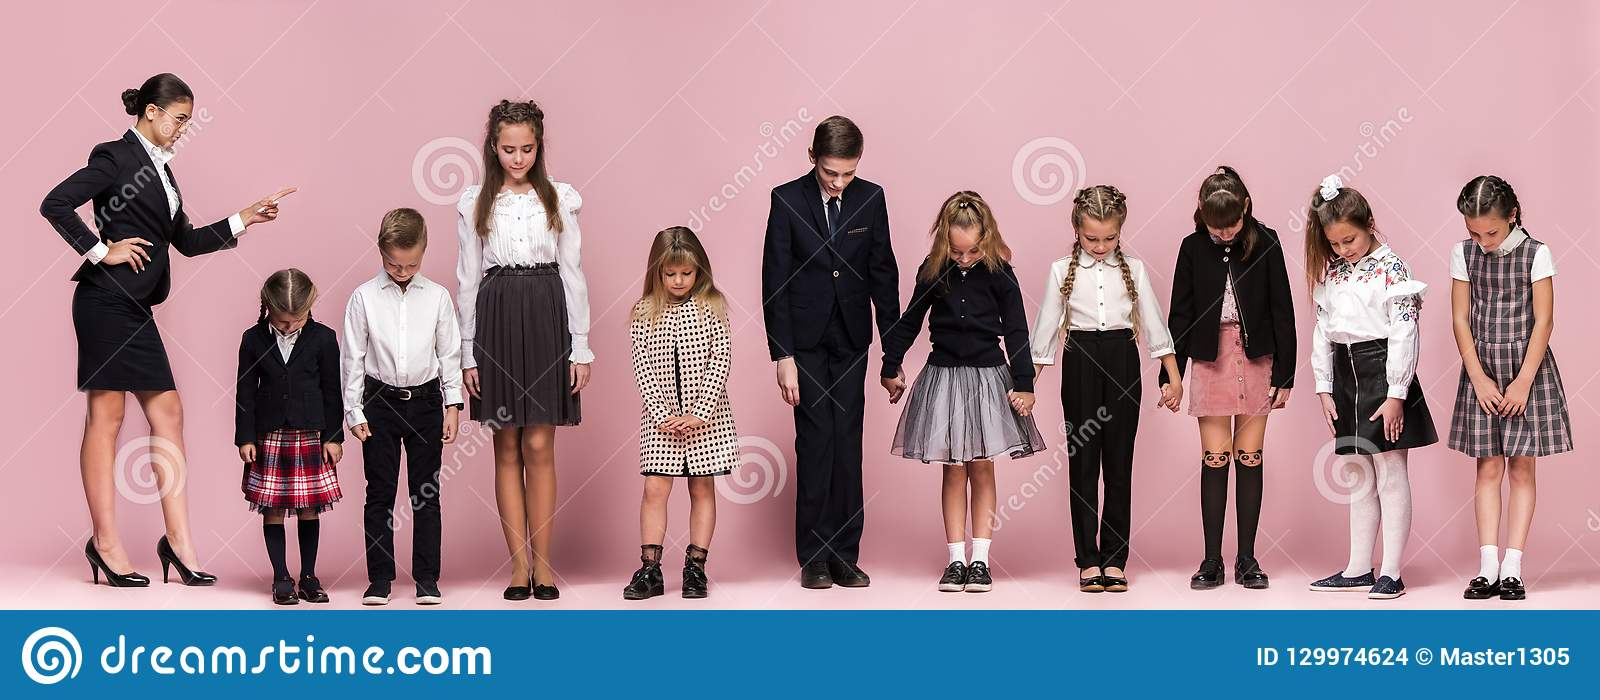 Cute stylish children on pink studio background. The beautiful teen girls and boy standing together